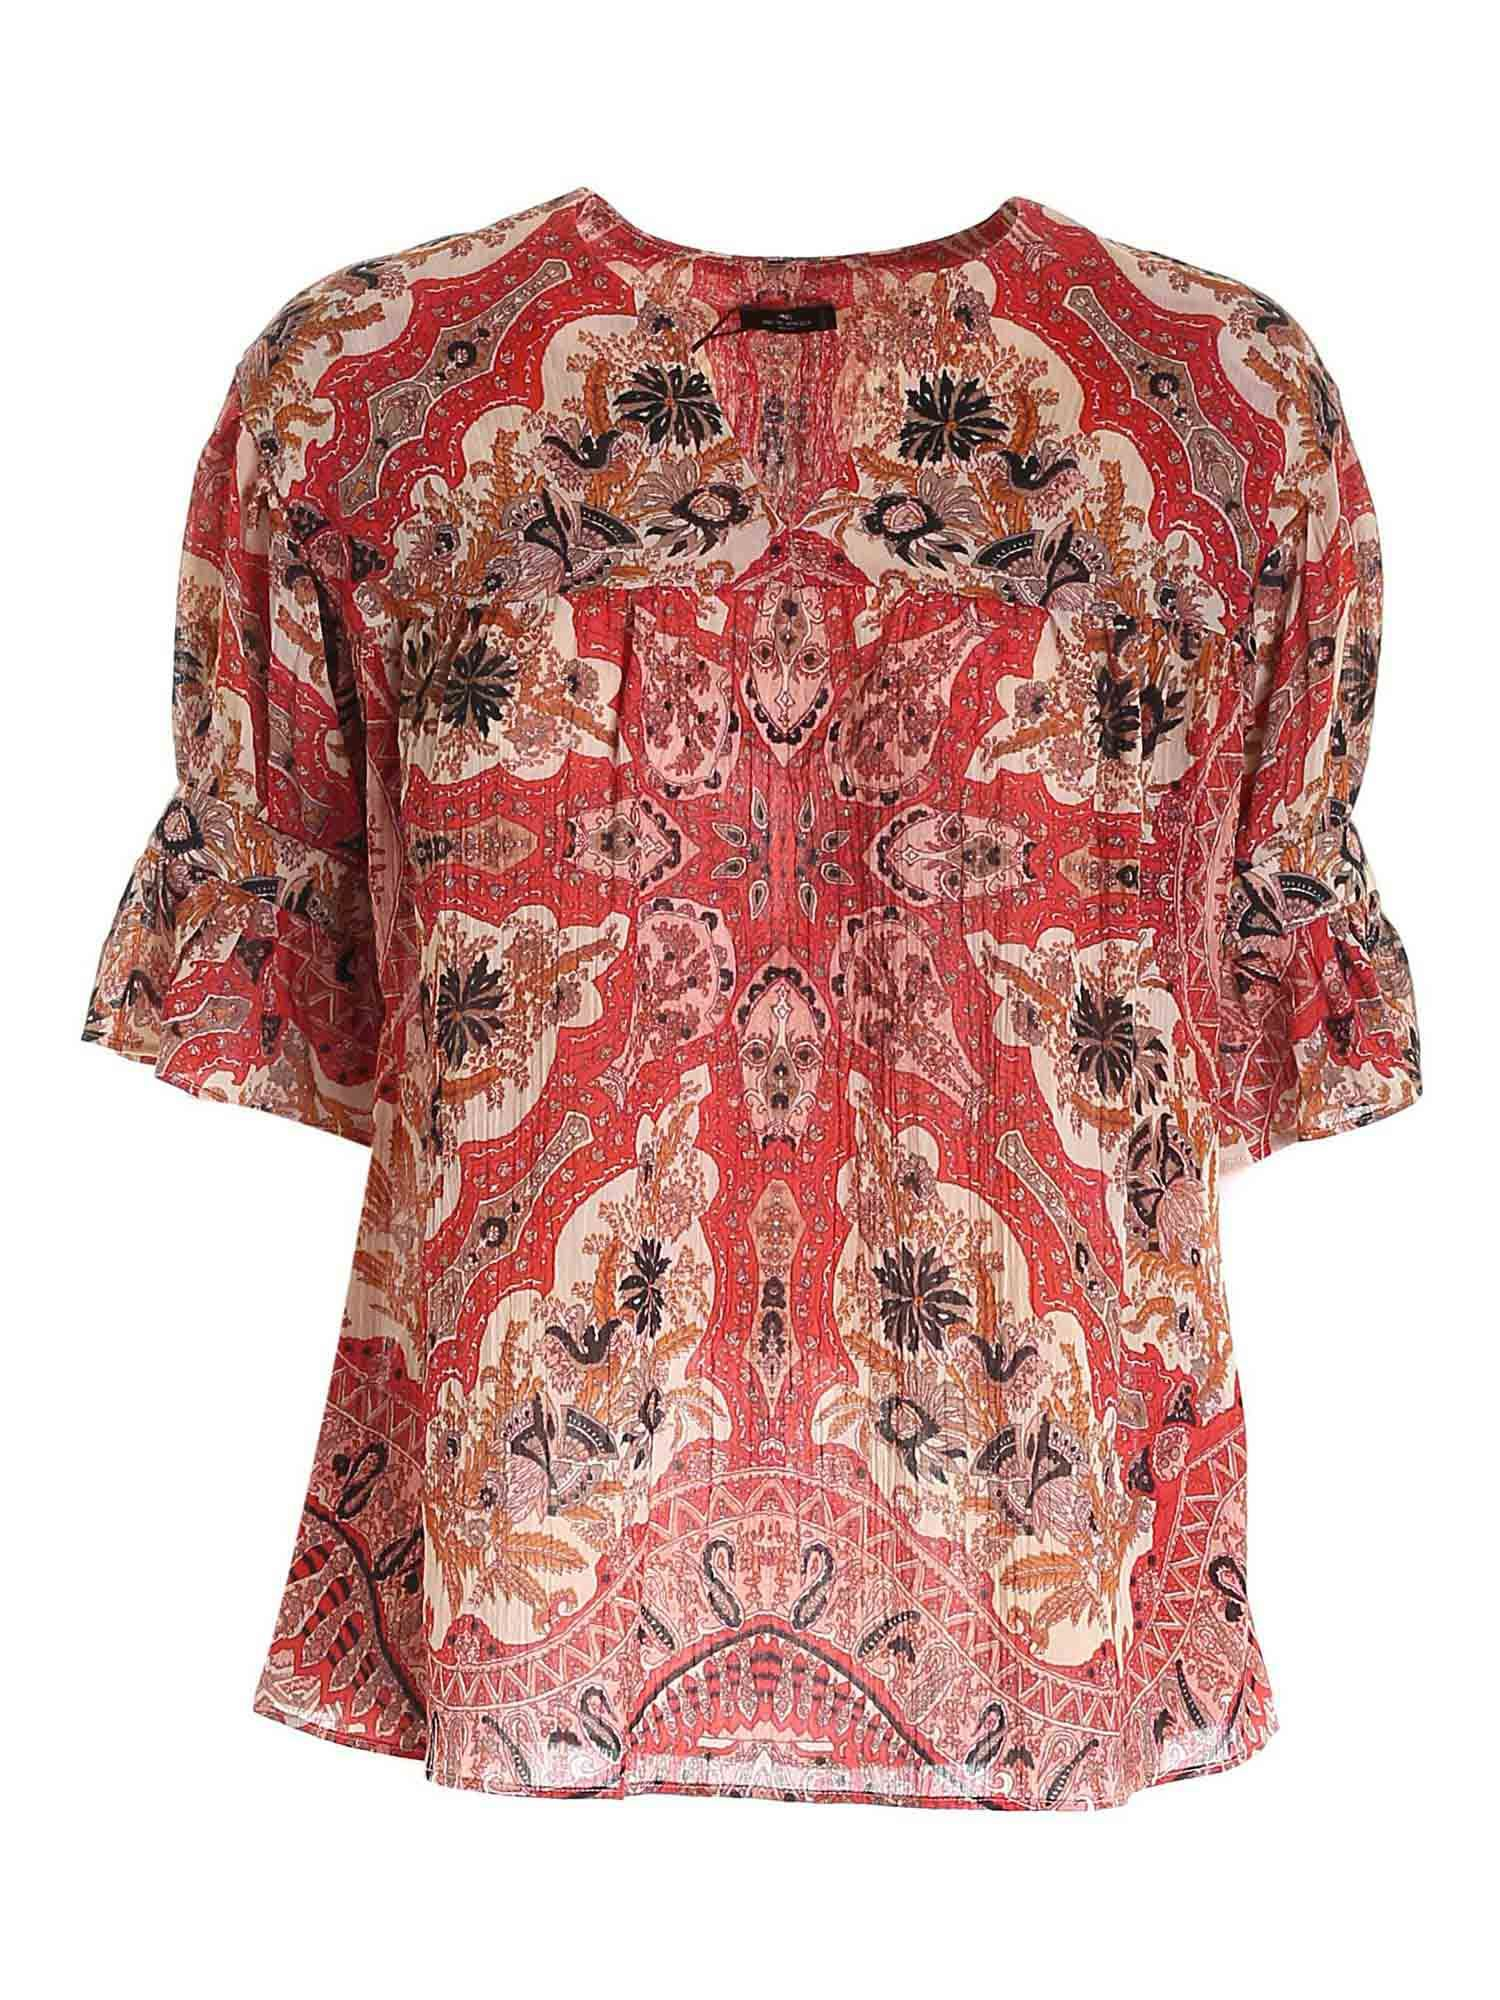 Etro PAISLEY PRINT BLOUSE IN RED